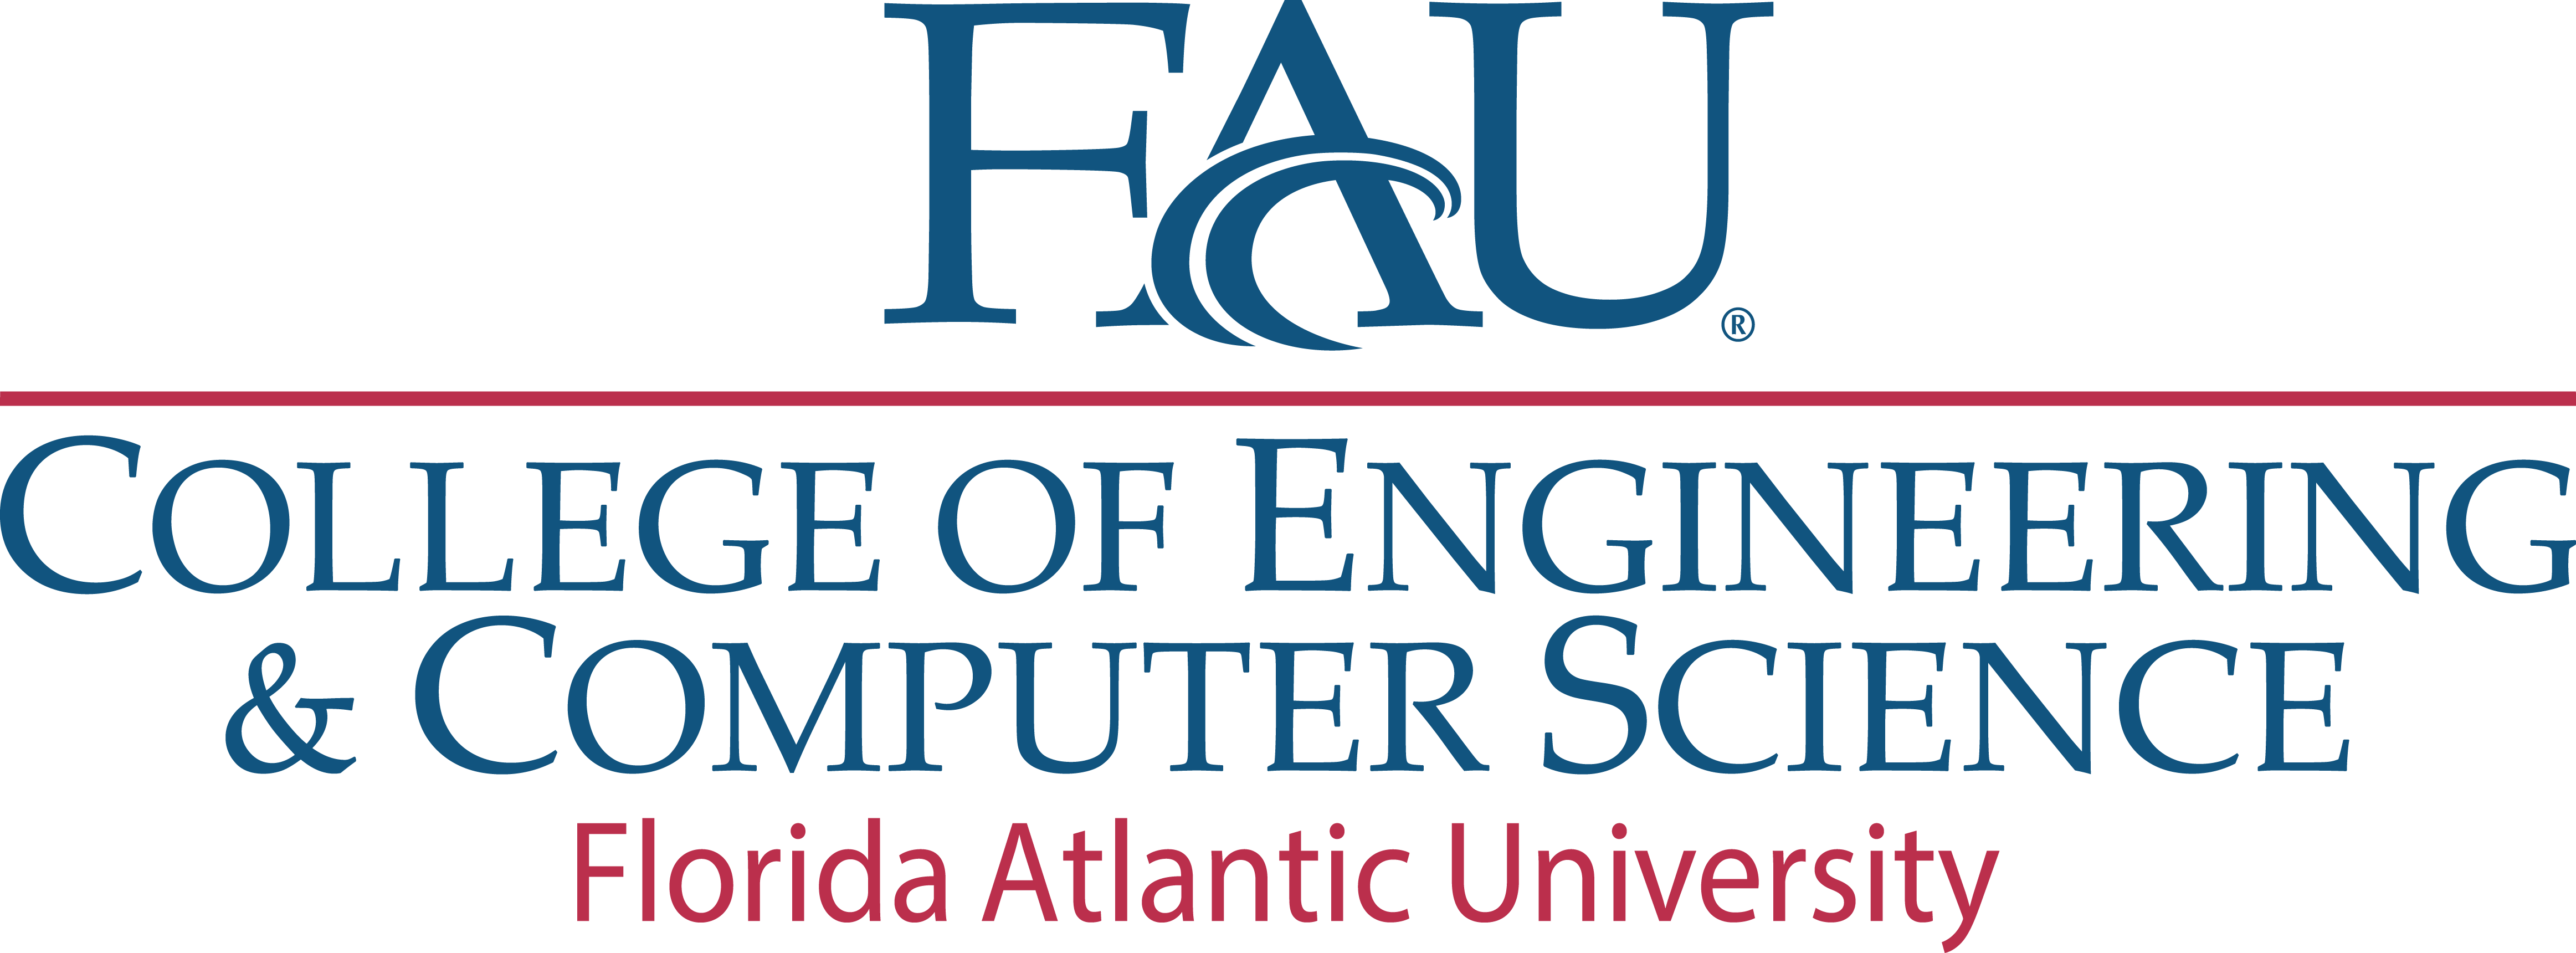 FAU Engineering & Computer Science